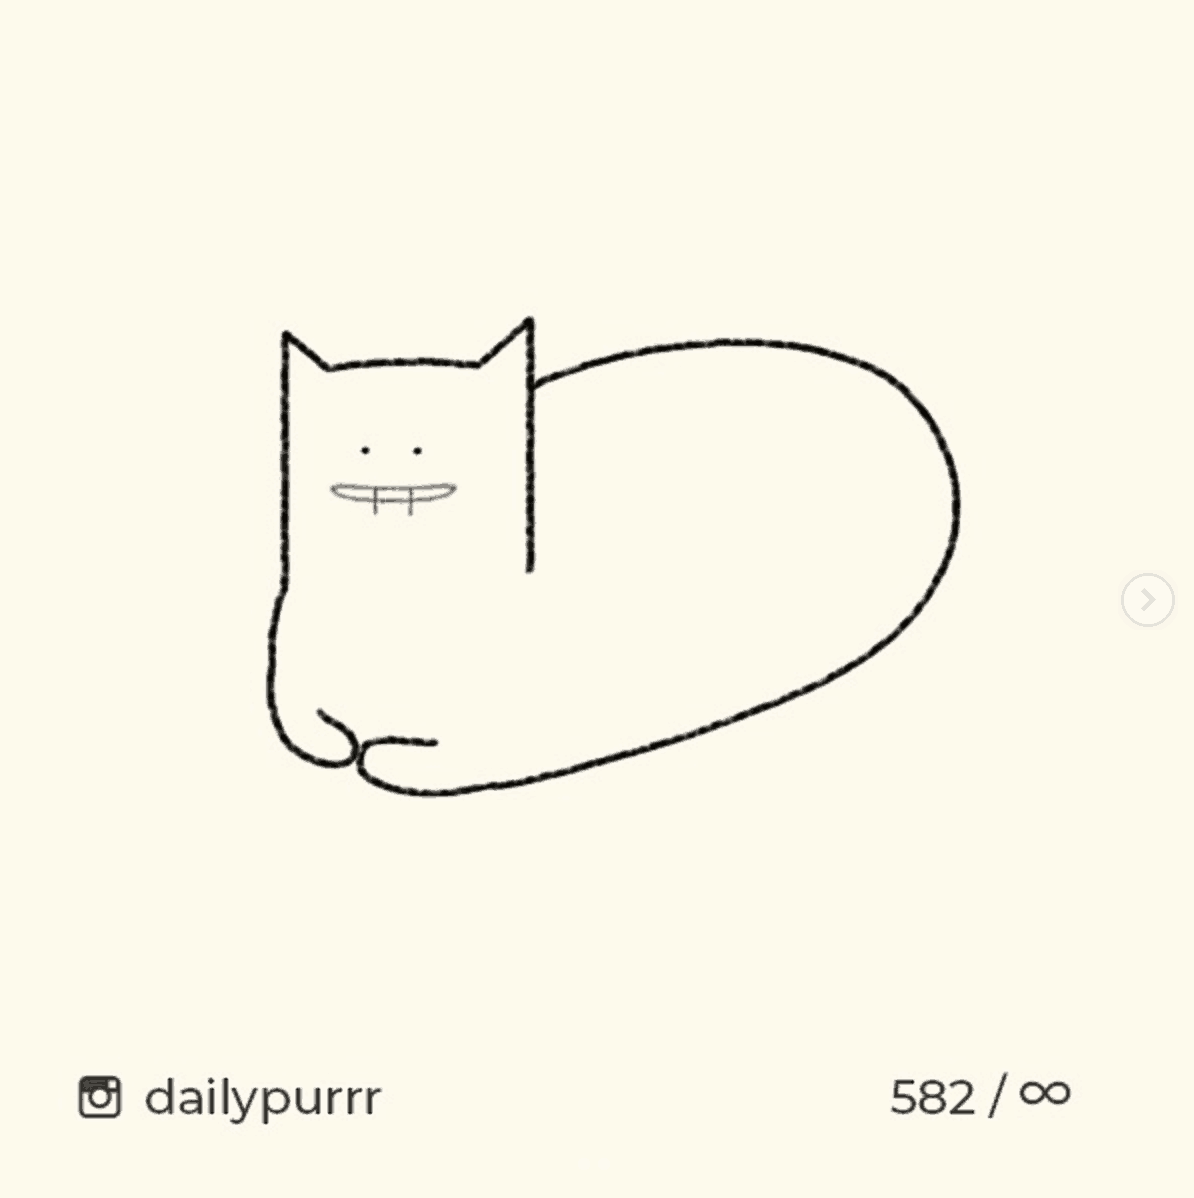 Daily Purrr cat drawing